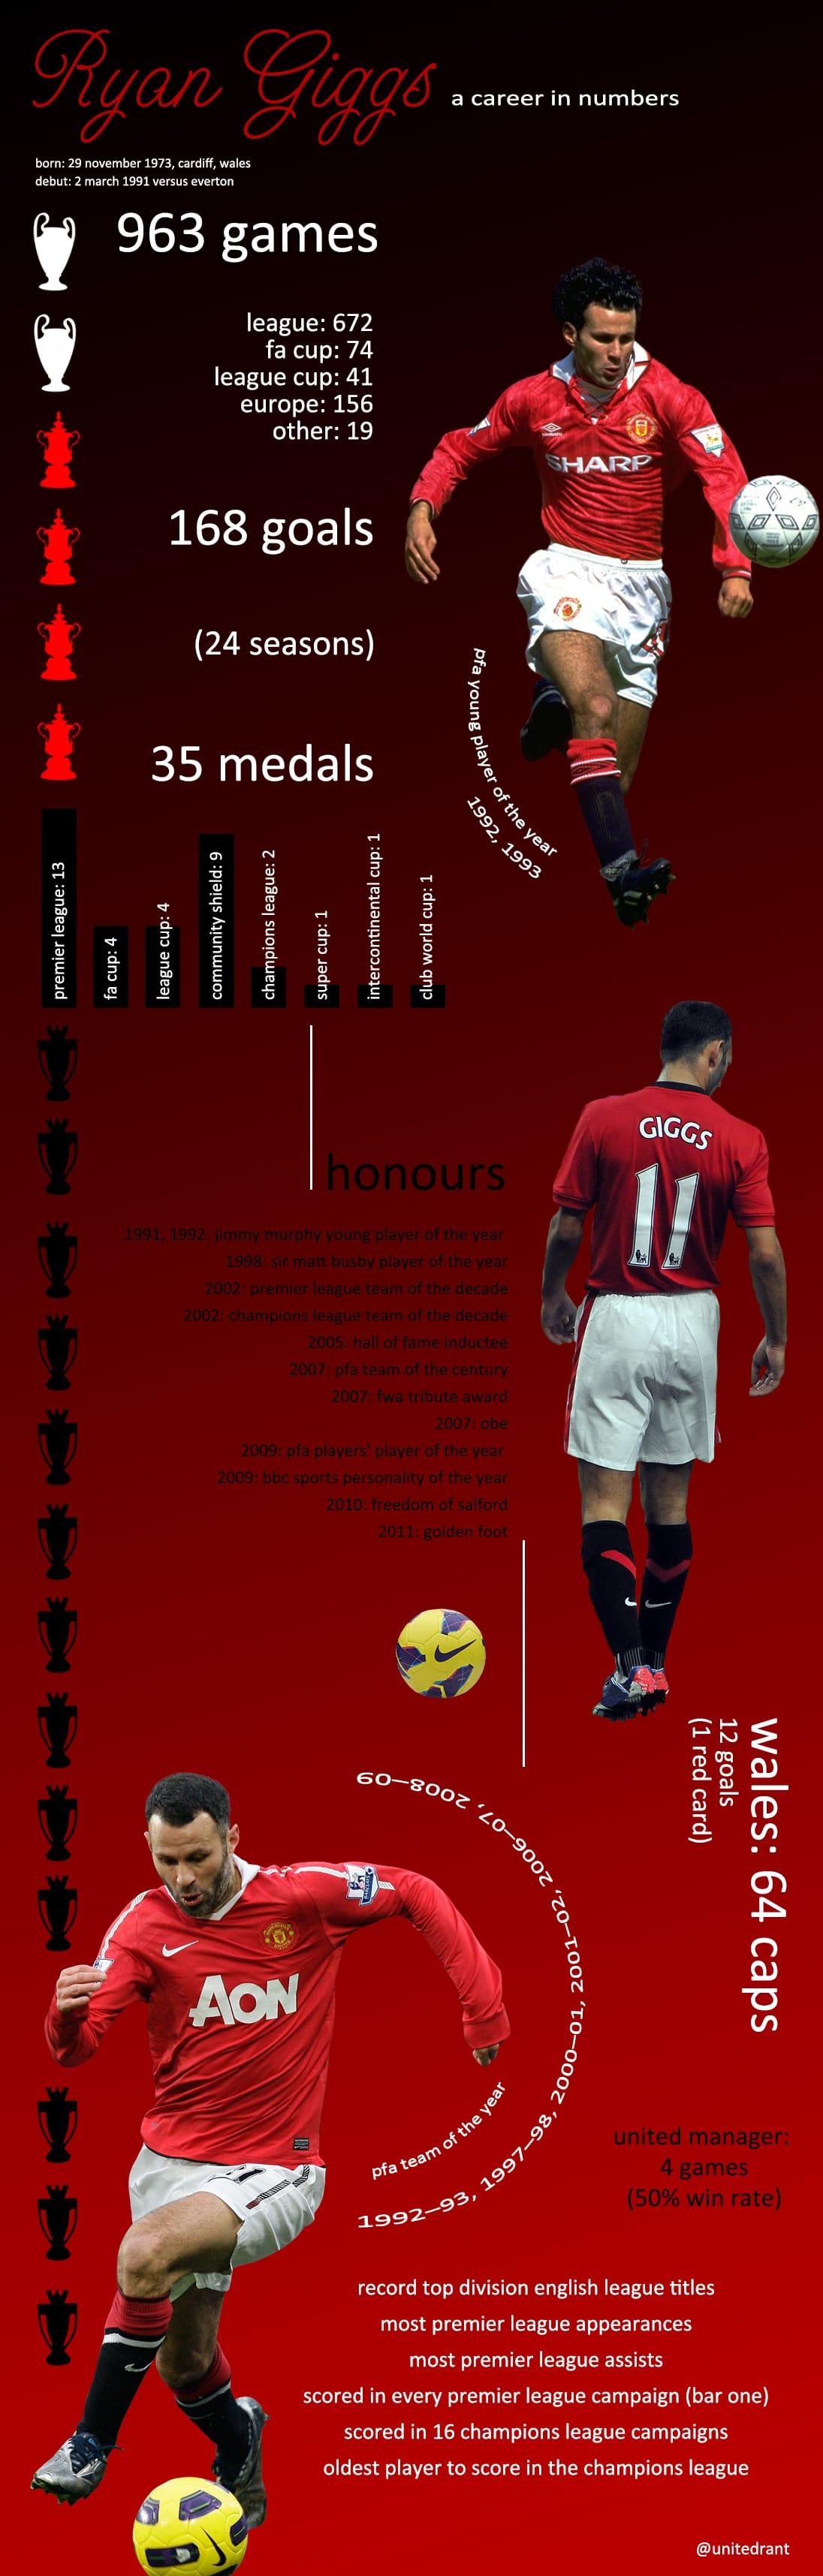 Ryan Giggs in numbers